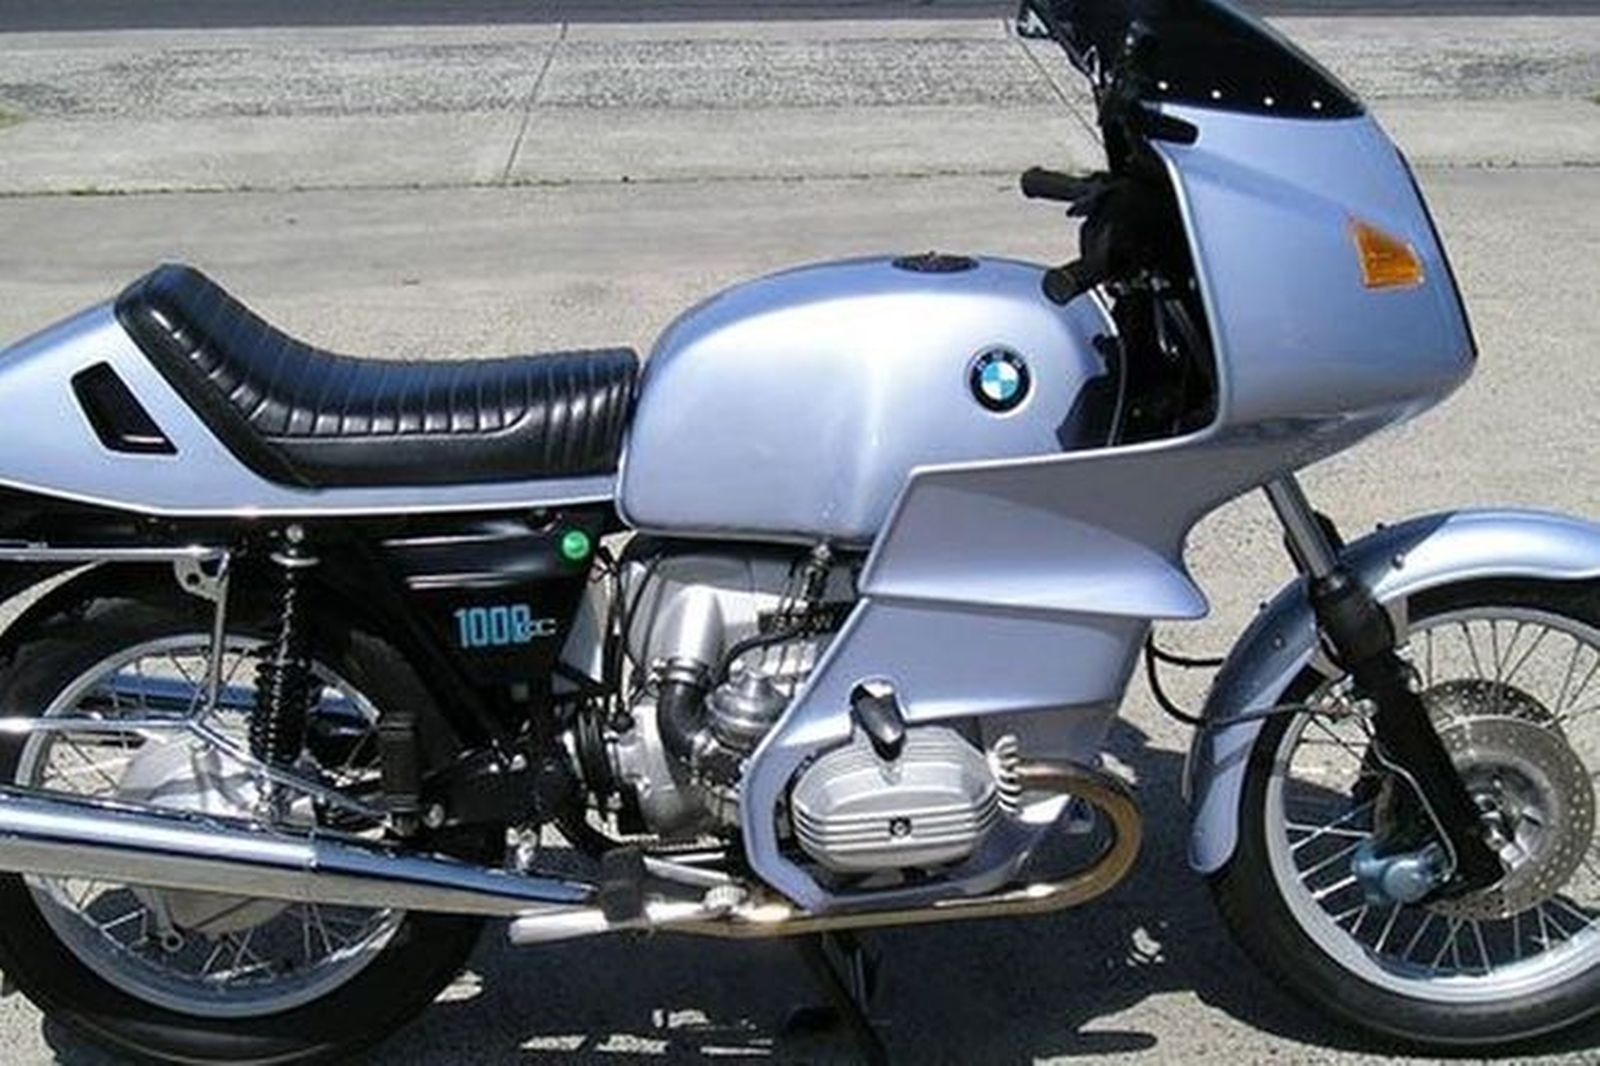 BMW R100 RS Motorcycle